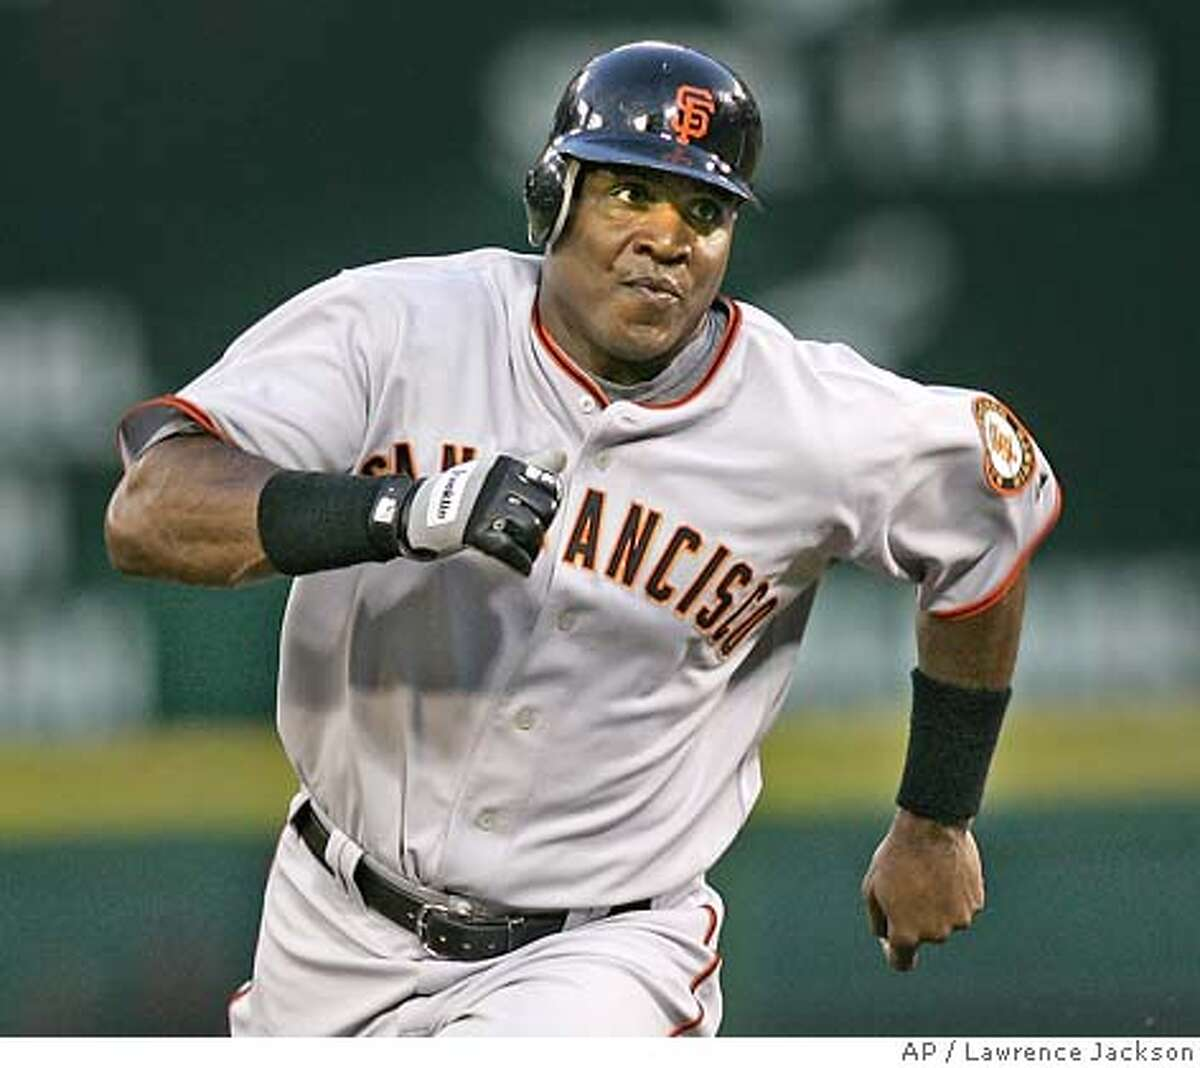 ** FILE ** San Francisco Giants' Barry Bonds rounds second base on his way to third on a Ray Durham double against the Washington Nationals in the fourth inning of a baseball game in Washington, in this July 26, 2006 file photo.. (AP Photo/Lawrence Jackson)